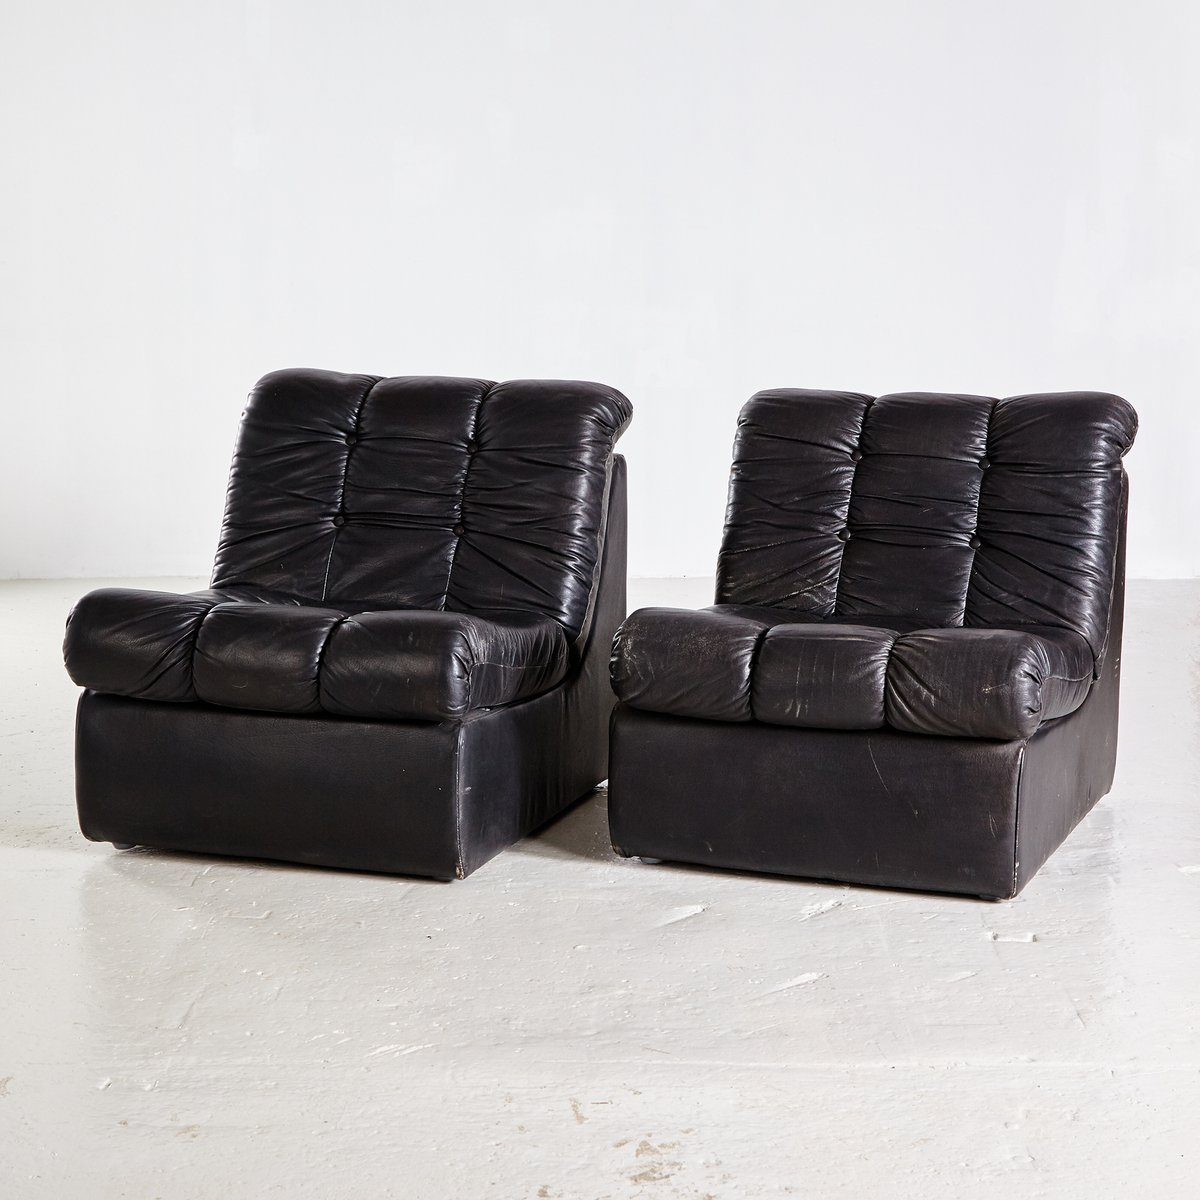 modulares vintage sofa aus schwarzem leder 1970er bei. Black Bedroom Furniture Sets. Home Design Ideas